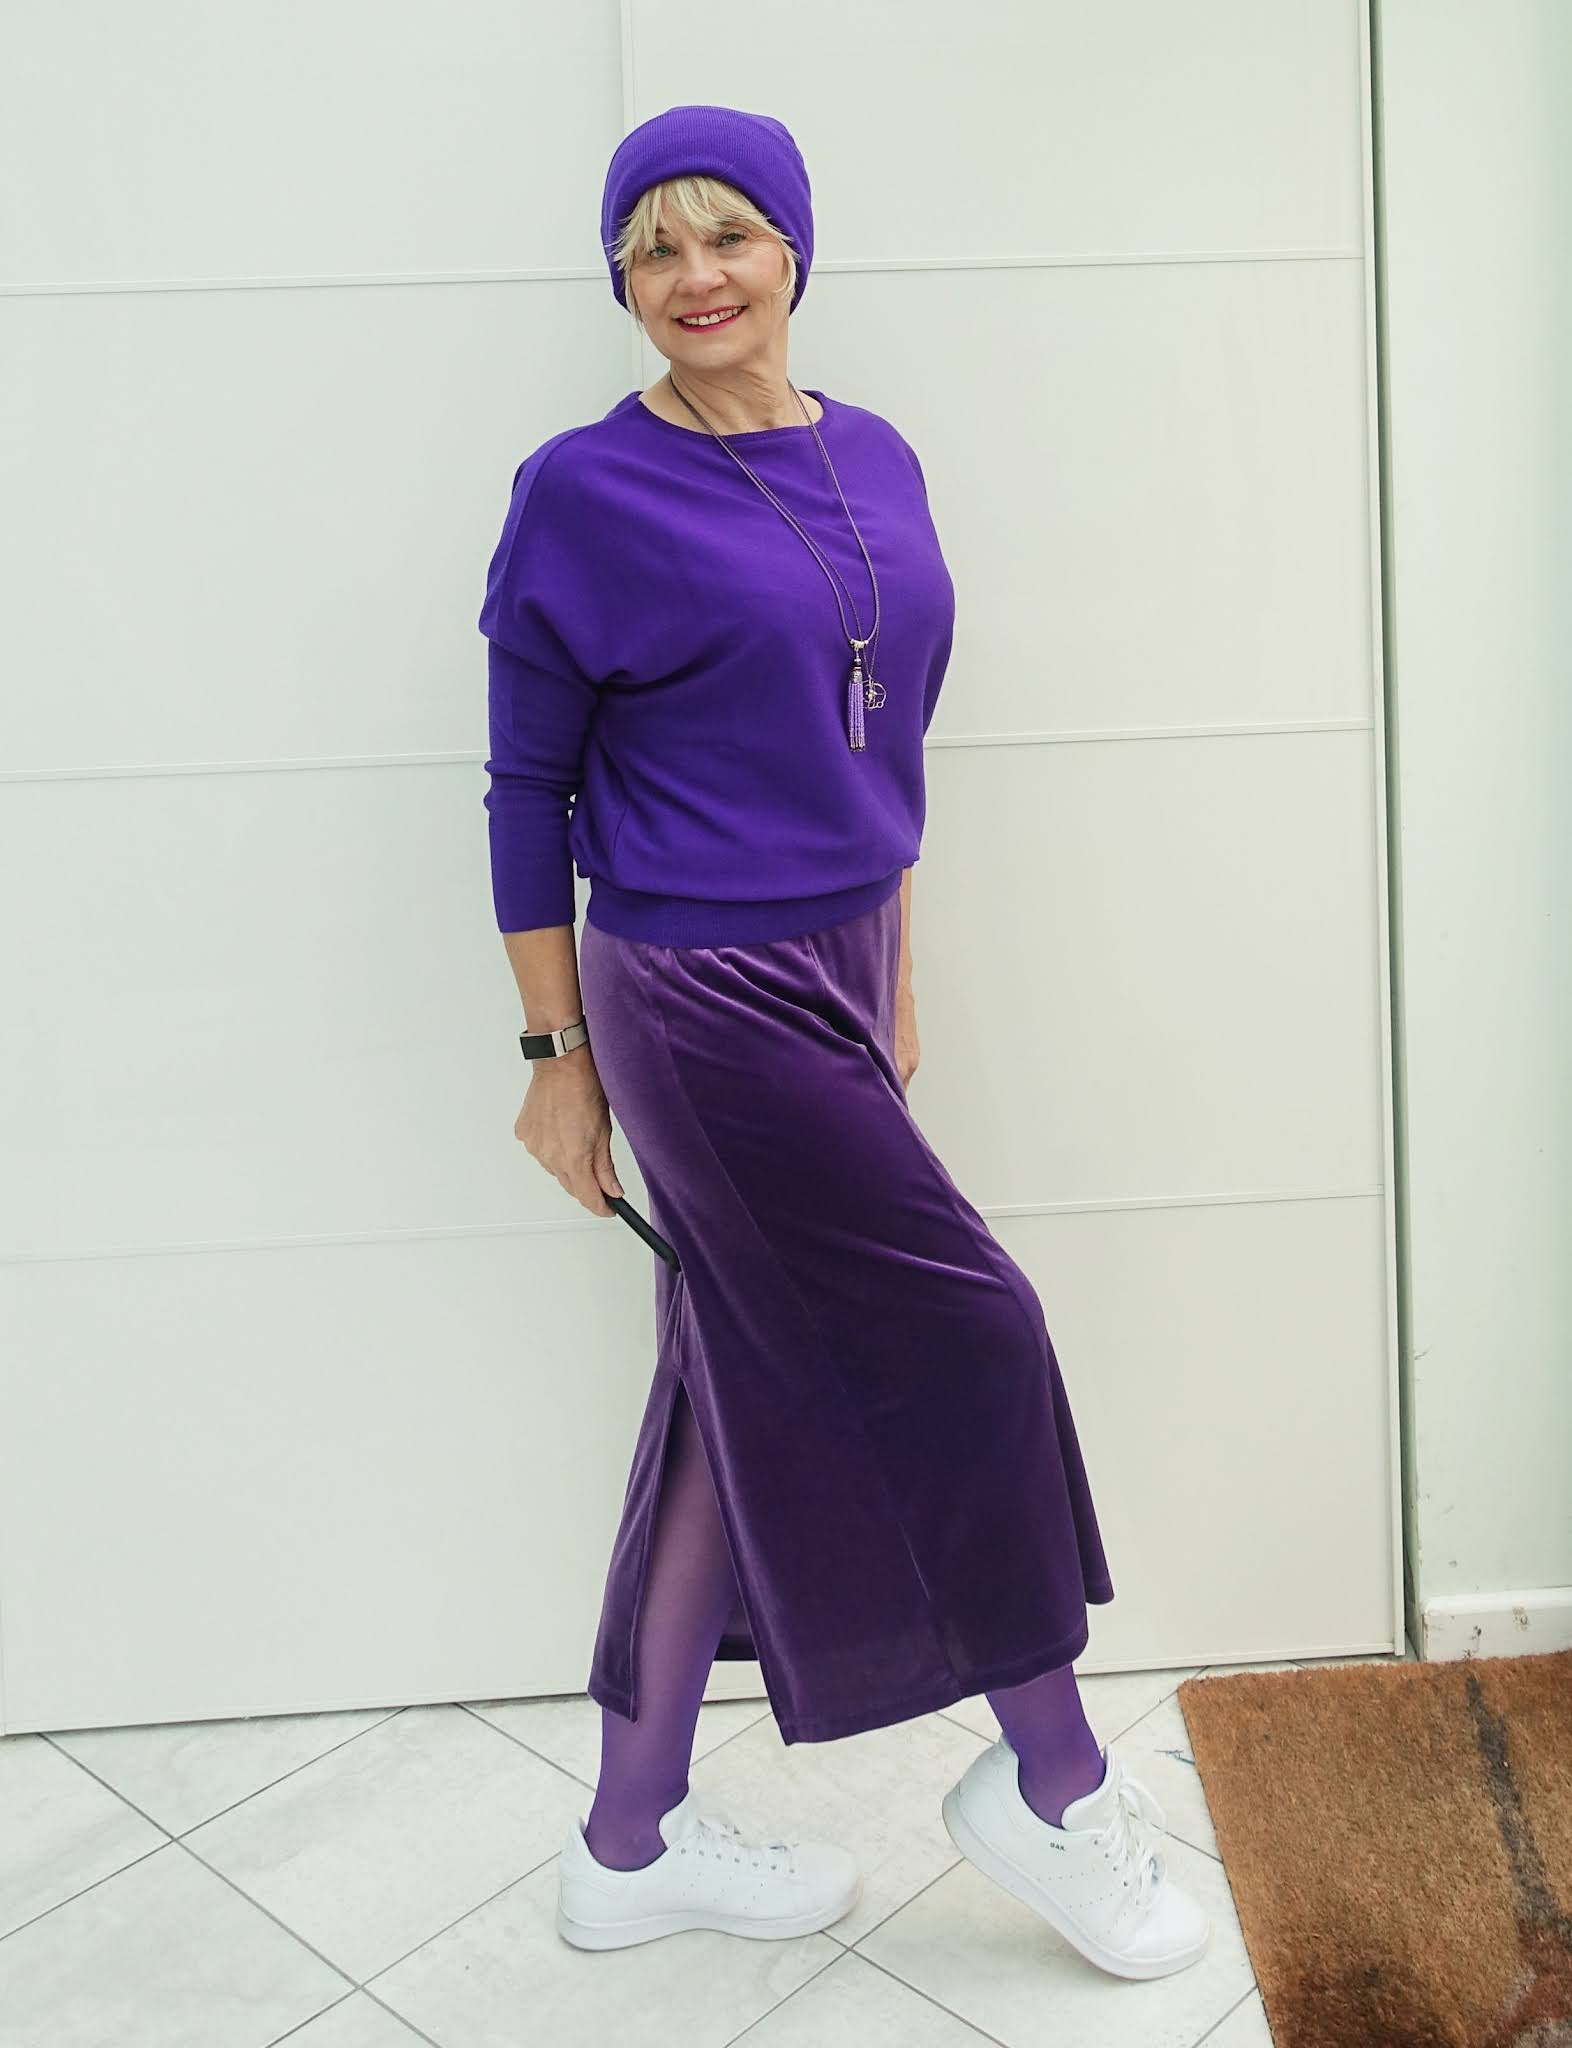 A purple merino beanie adds an Abba-esque touch to a monochrome purple outfit for Is This Mutton blogger Gail Hanlon